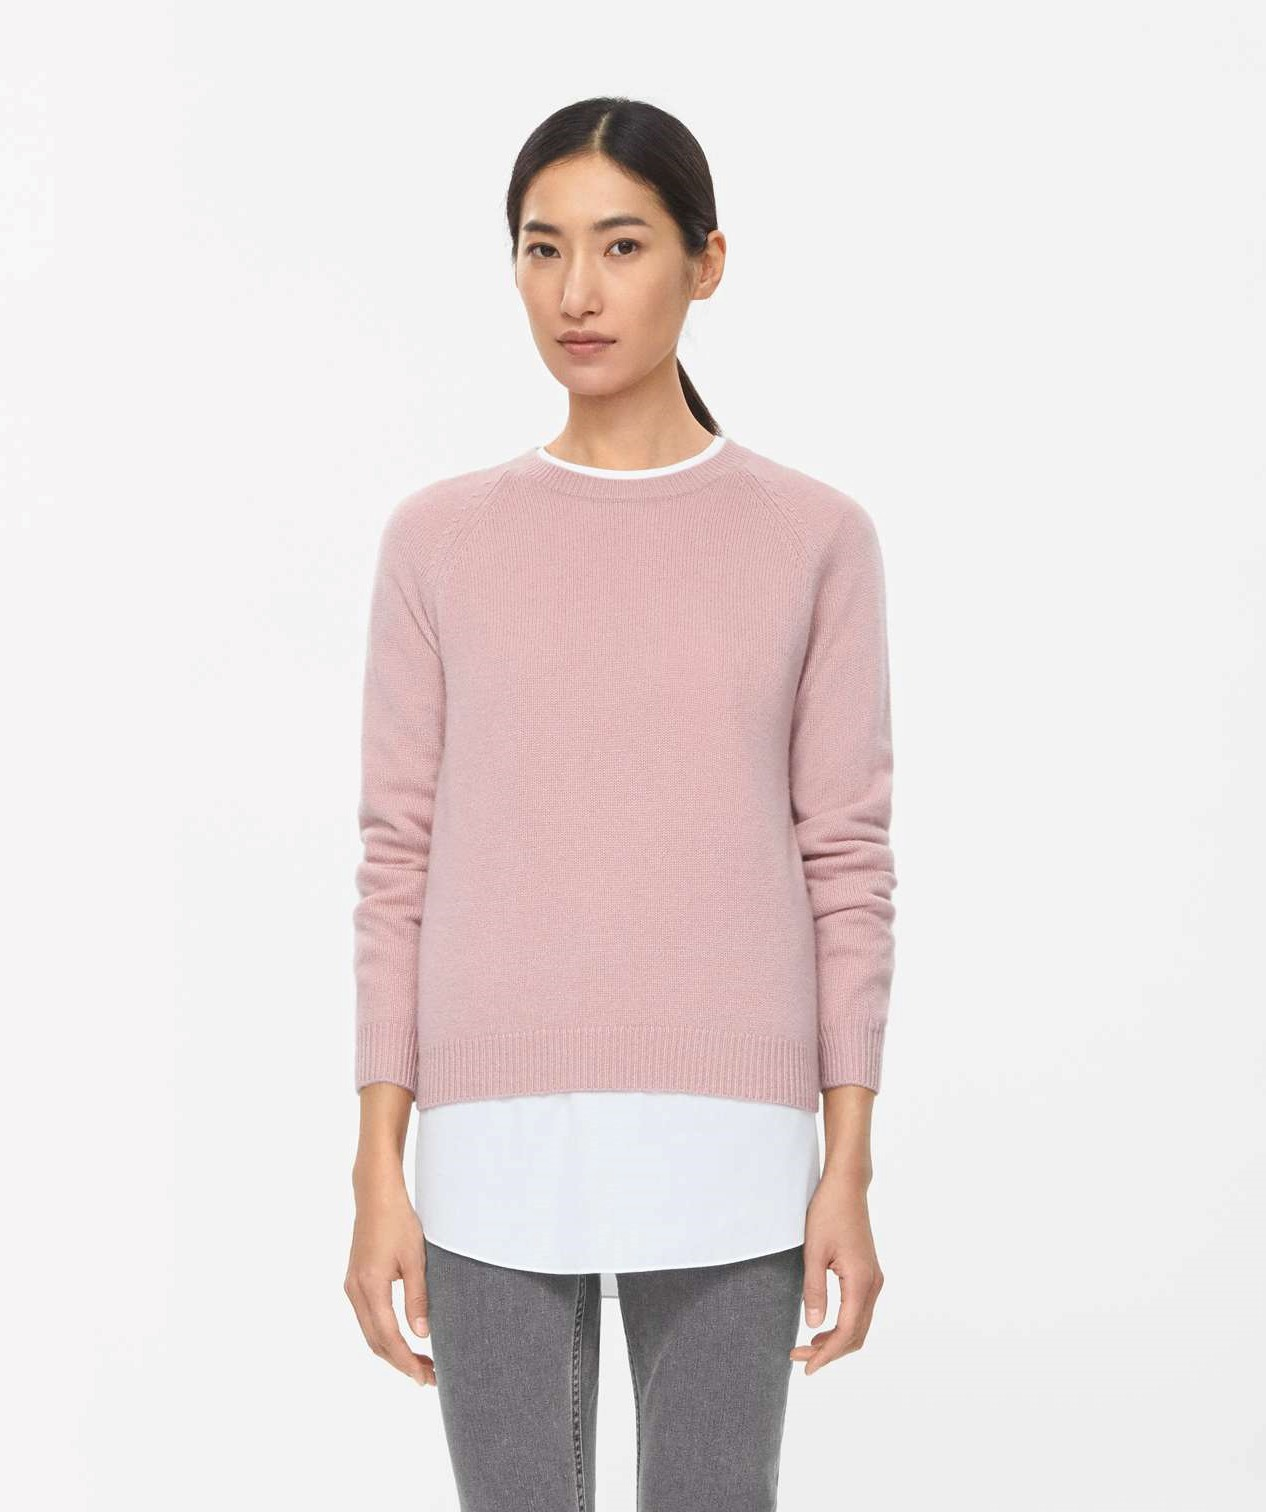 18a9b41764cf COS RELAXED CASHMERE JUMPER pale pink   Style Point of View Blog